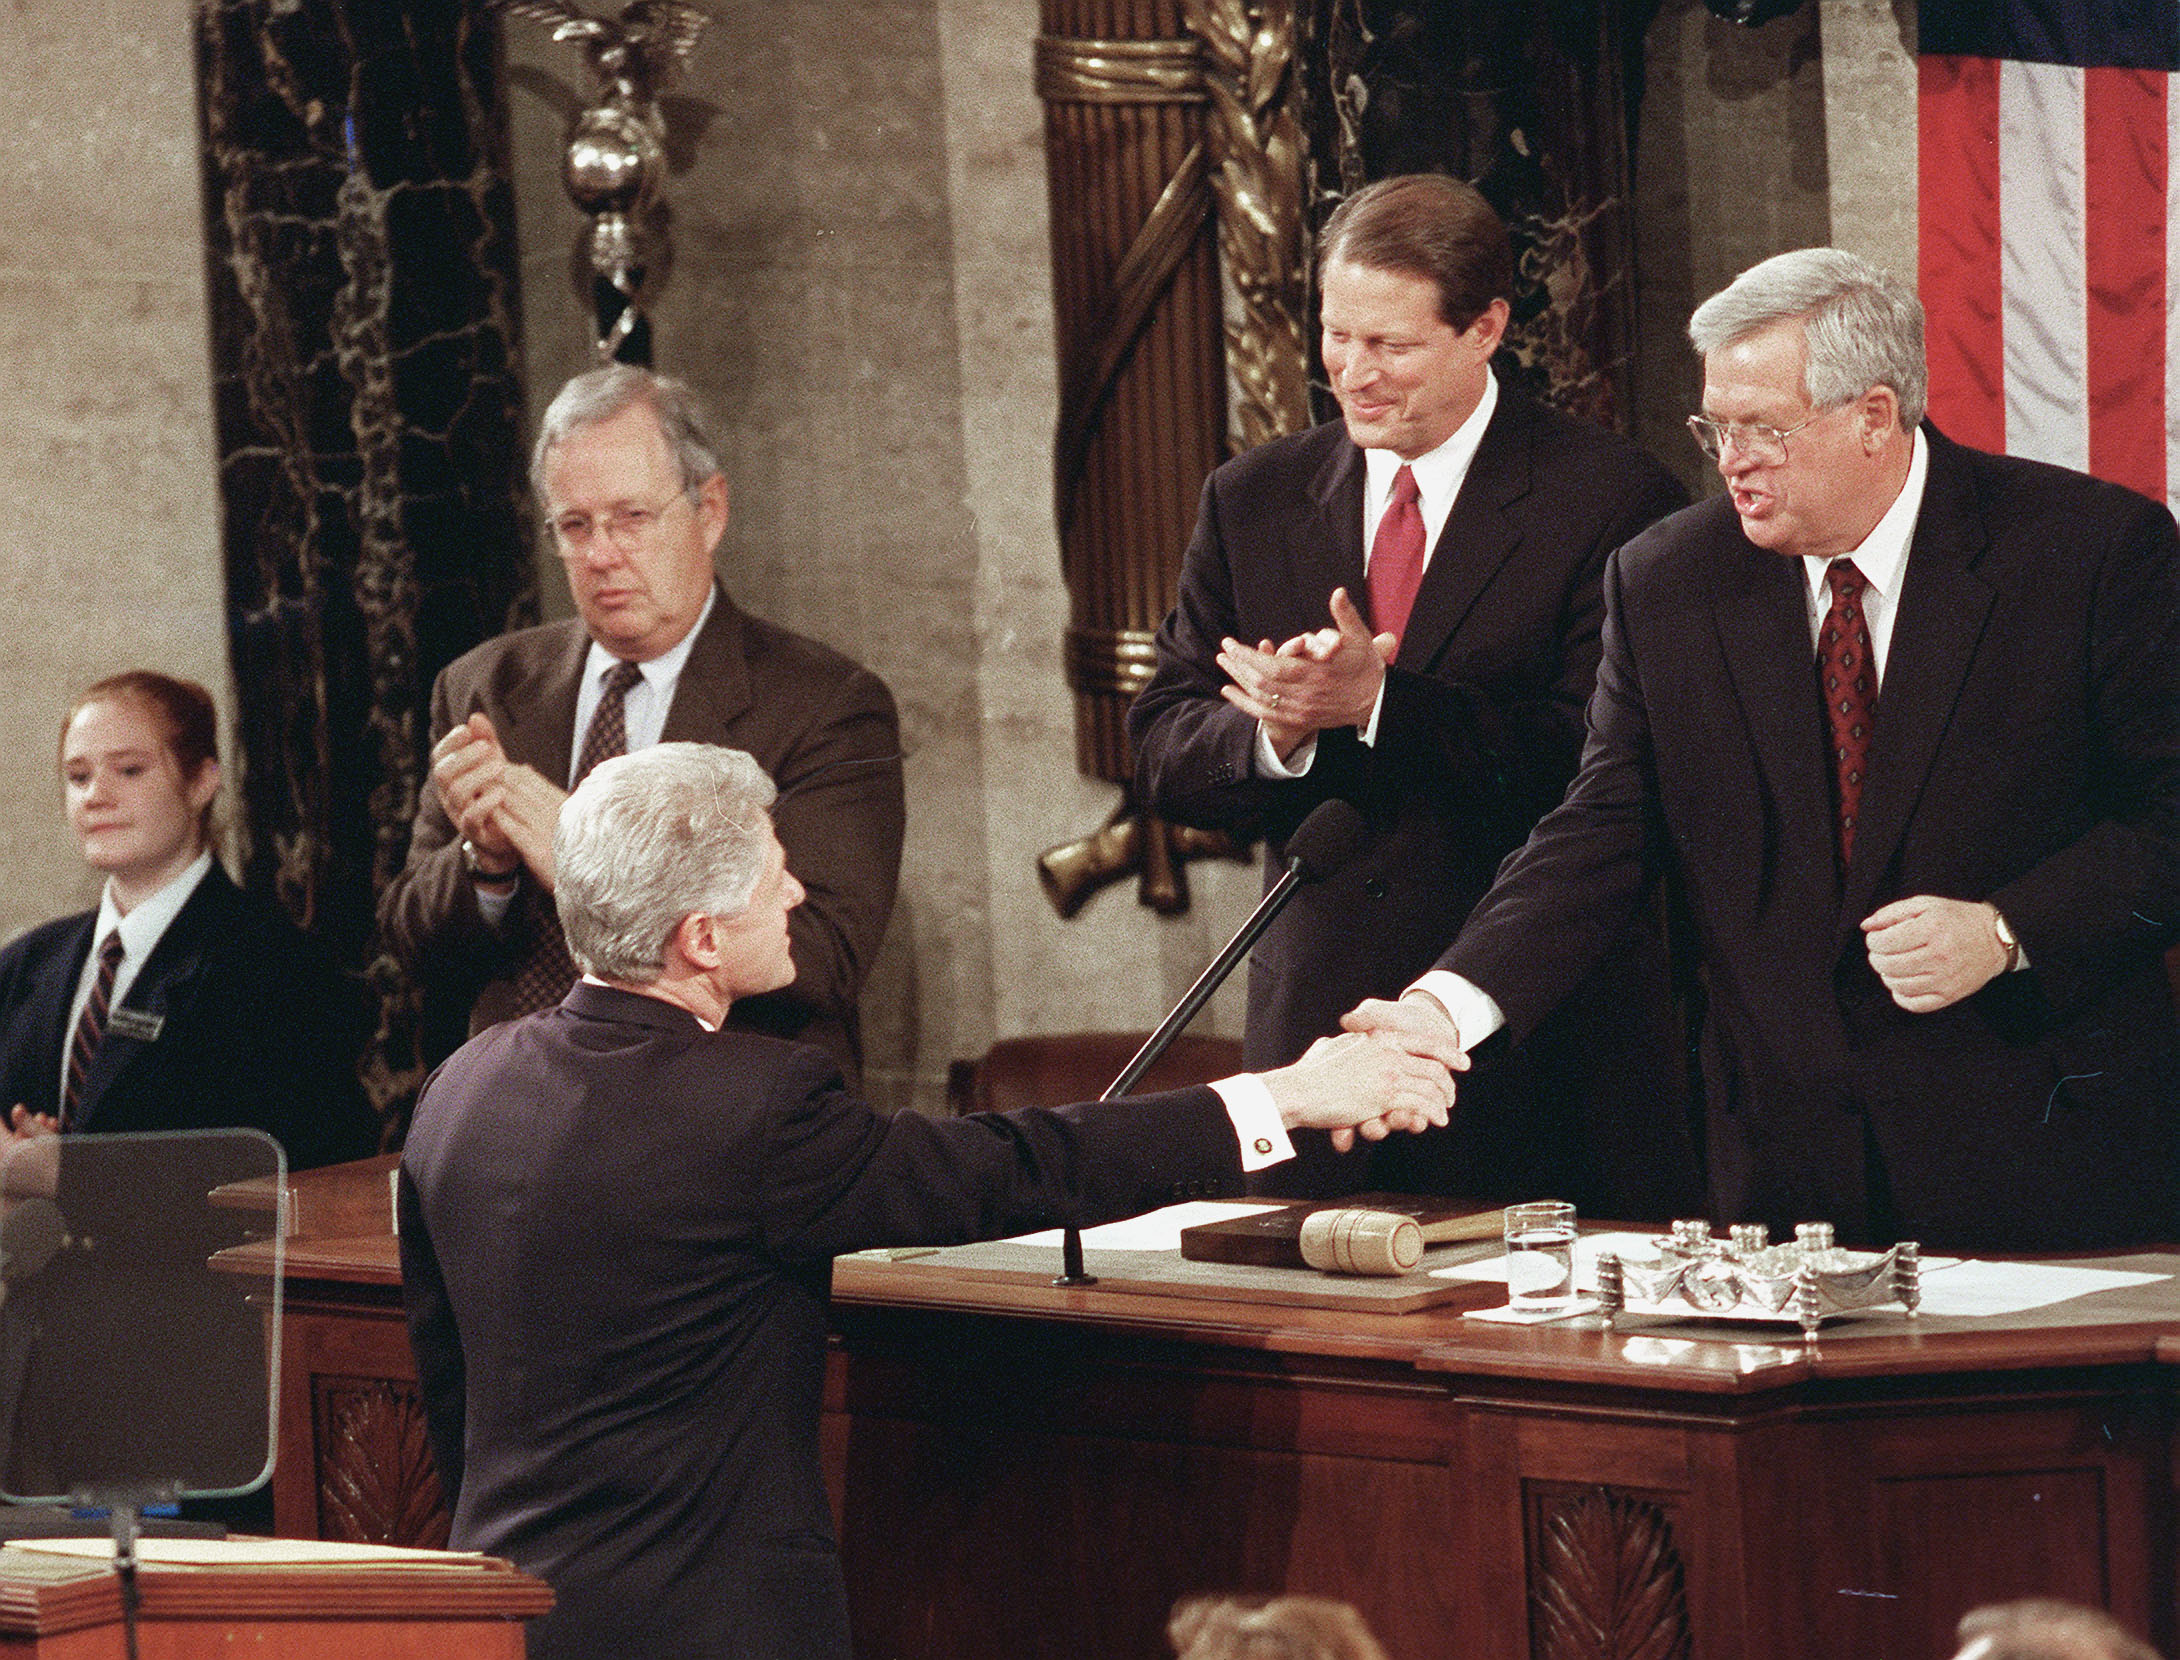 Before delivering his 1999 State of the Union address, President Clinton greets House Speaker J. Dennis Hastert,R-Ill., as Vice President Gore looks on. Douglas Graham/ CQ Roll Call file photo)